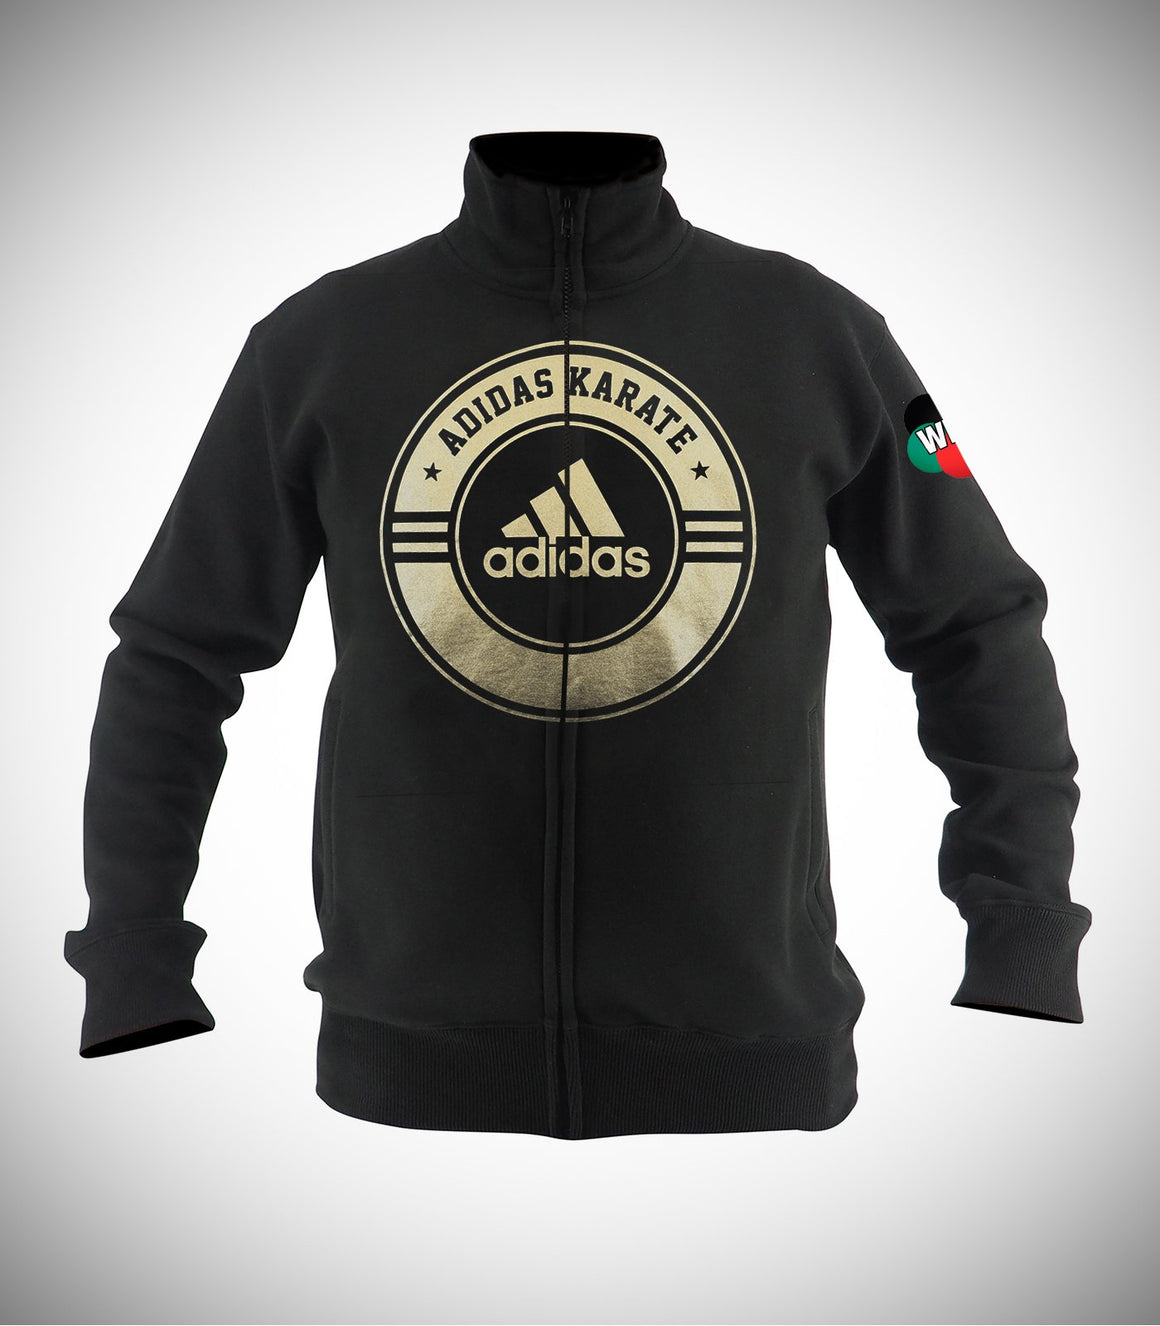 ADIDAS WKF KARATE JACKET BLACK/GOLD